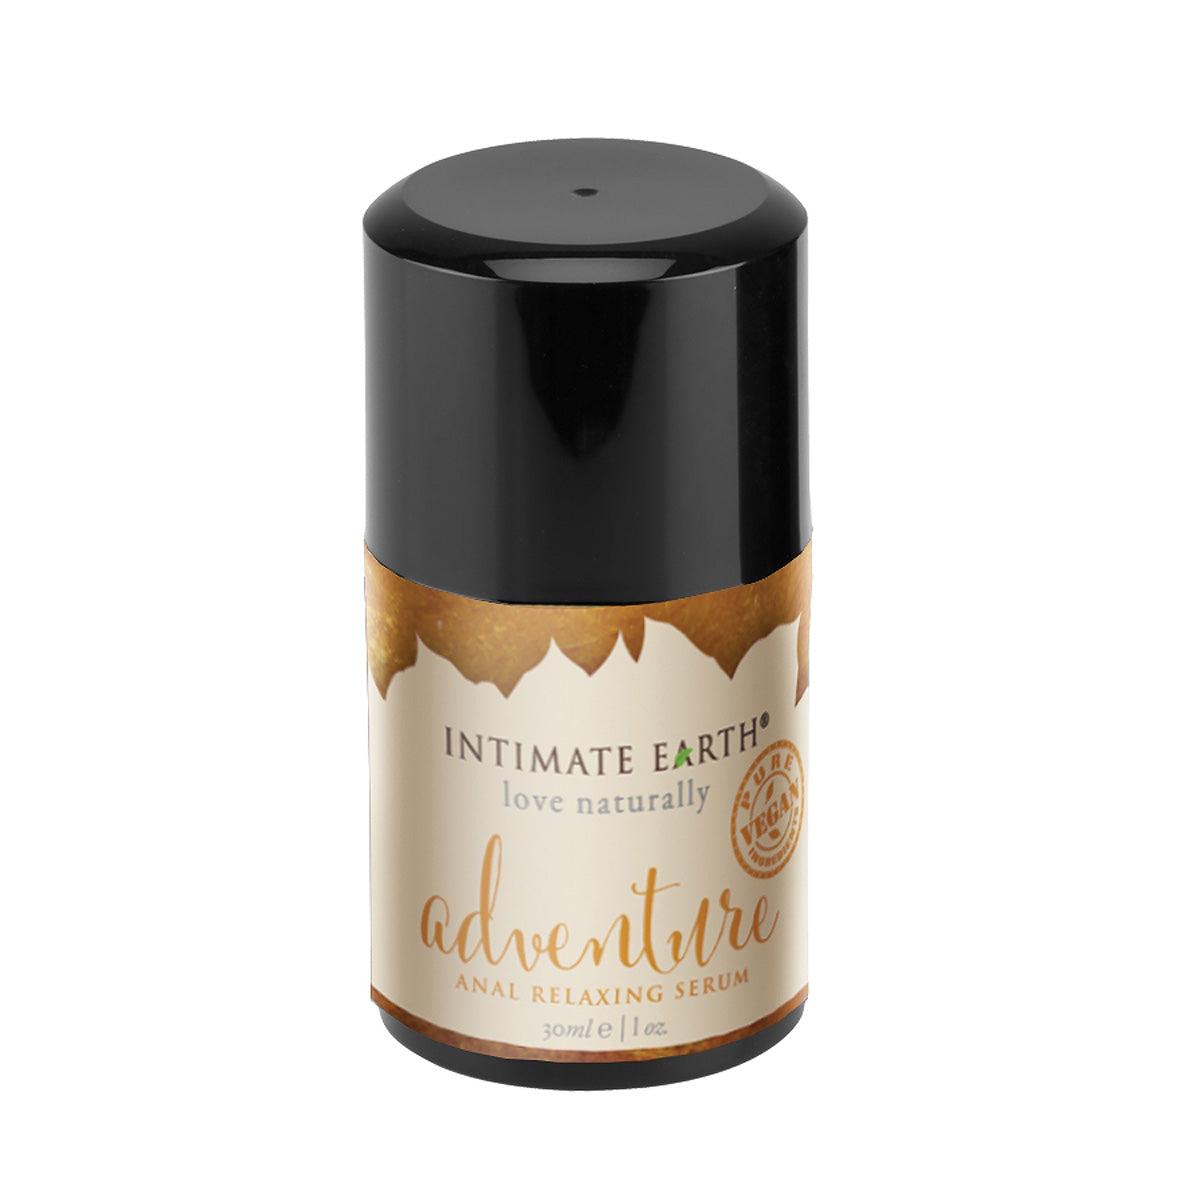 Intimate Earth's love naturally daring anal relaxing serum for men, 1 once, bottle is dark brown, almost black